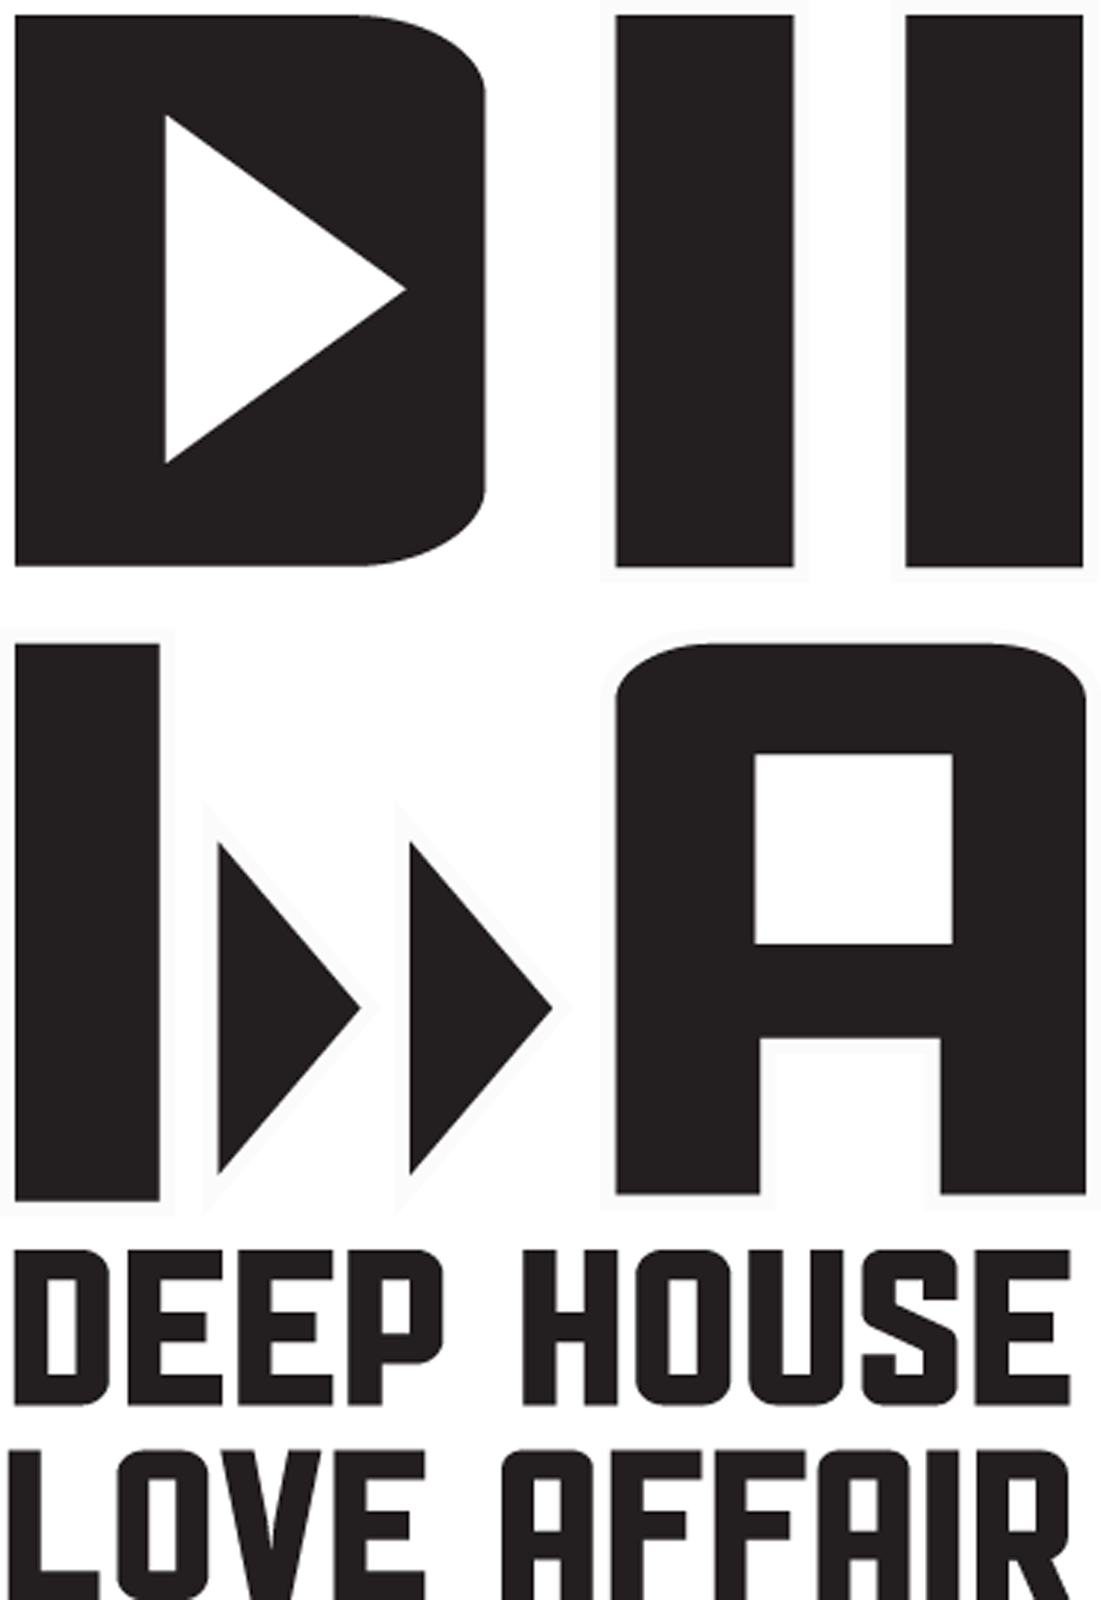 Deep House Love Affair